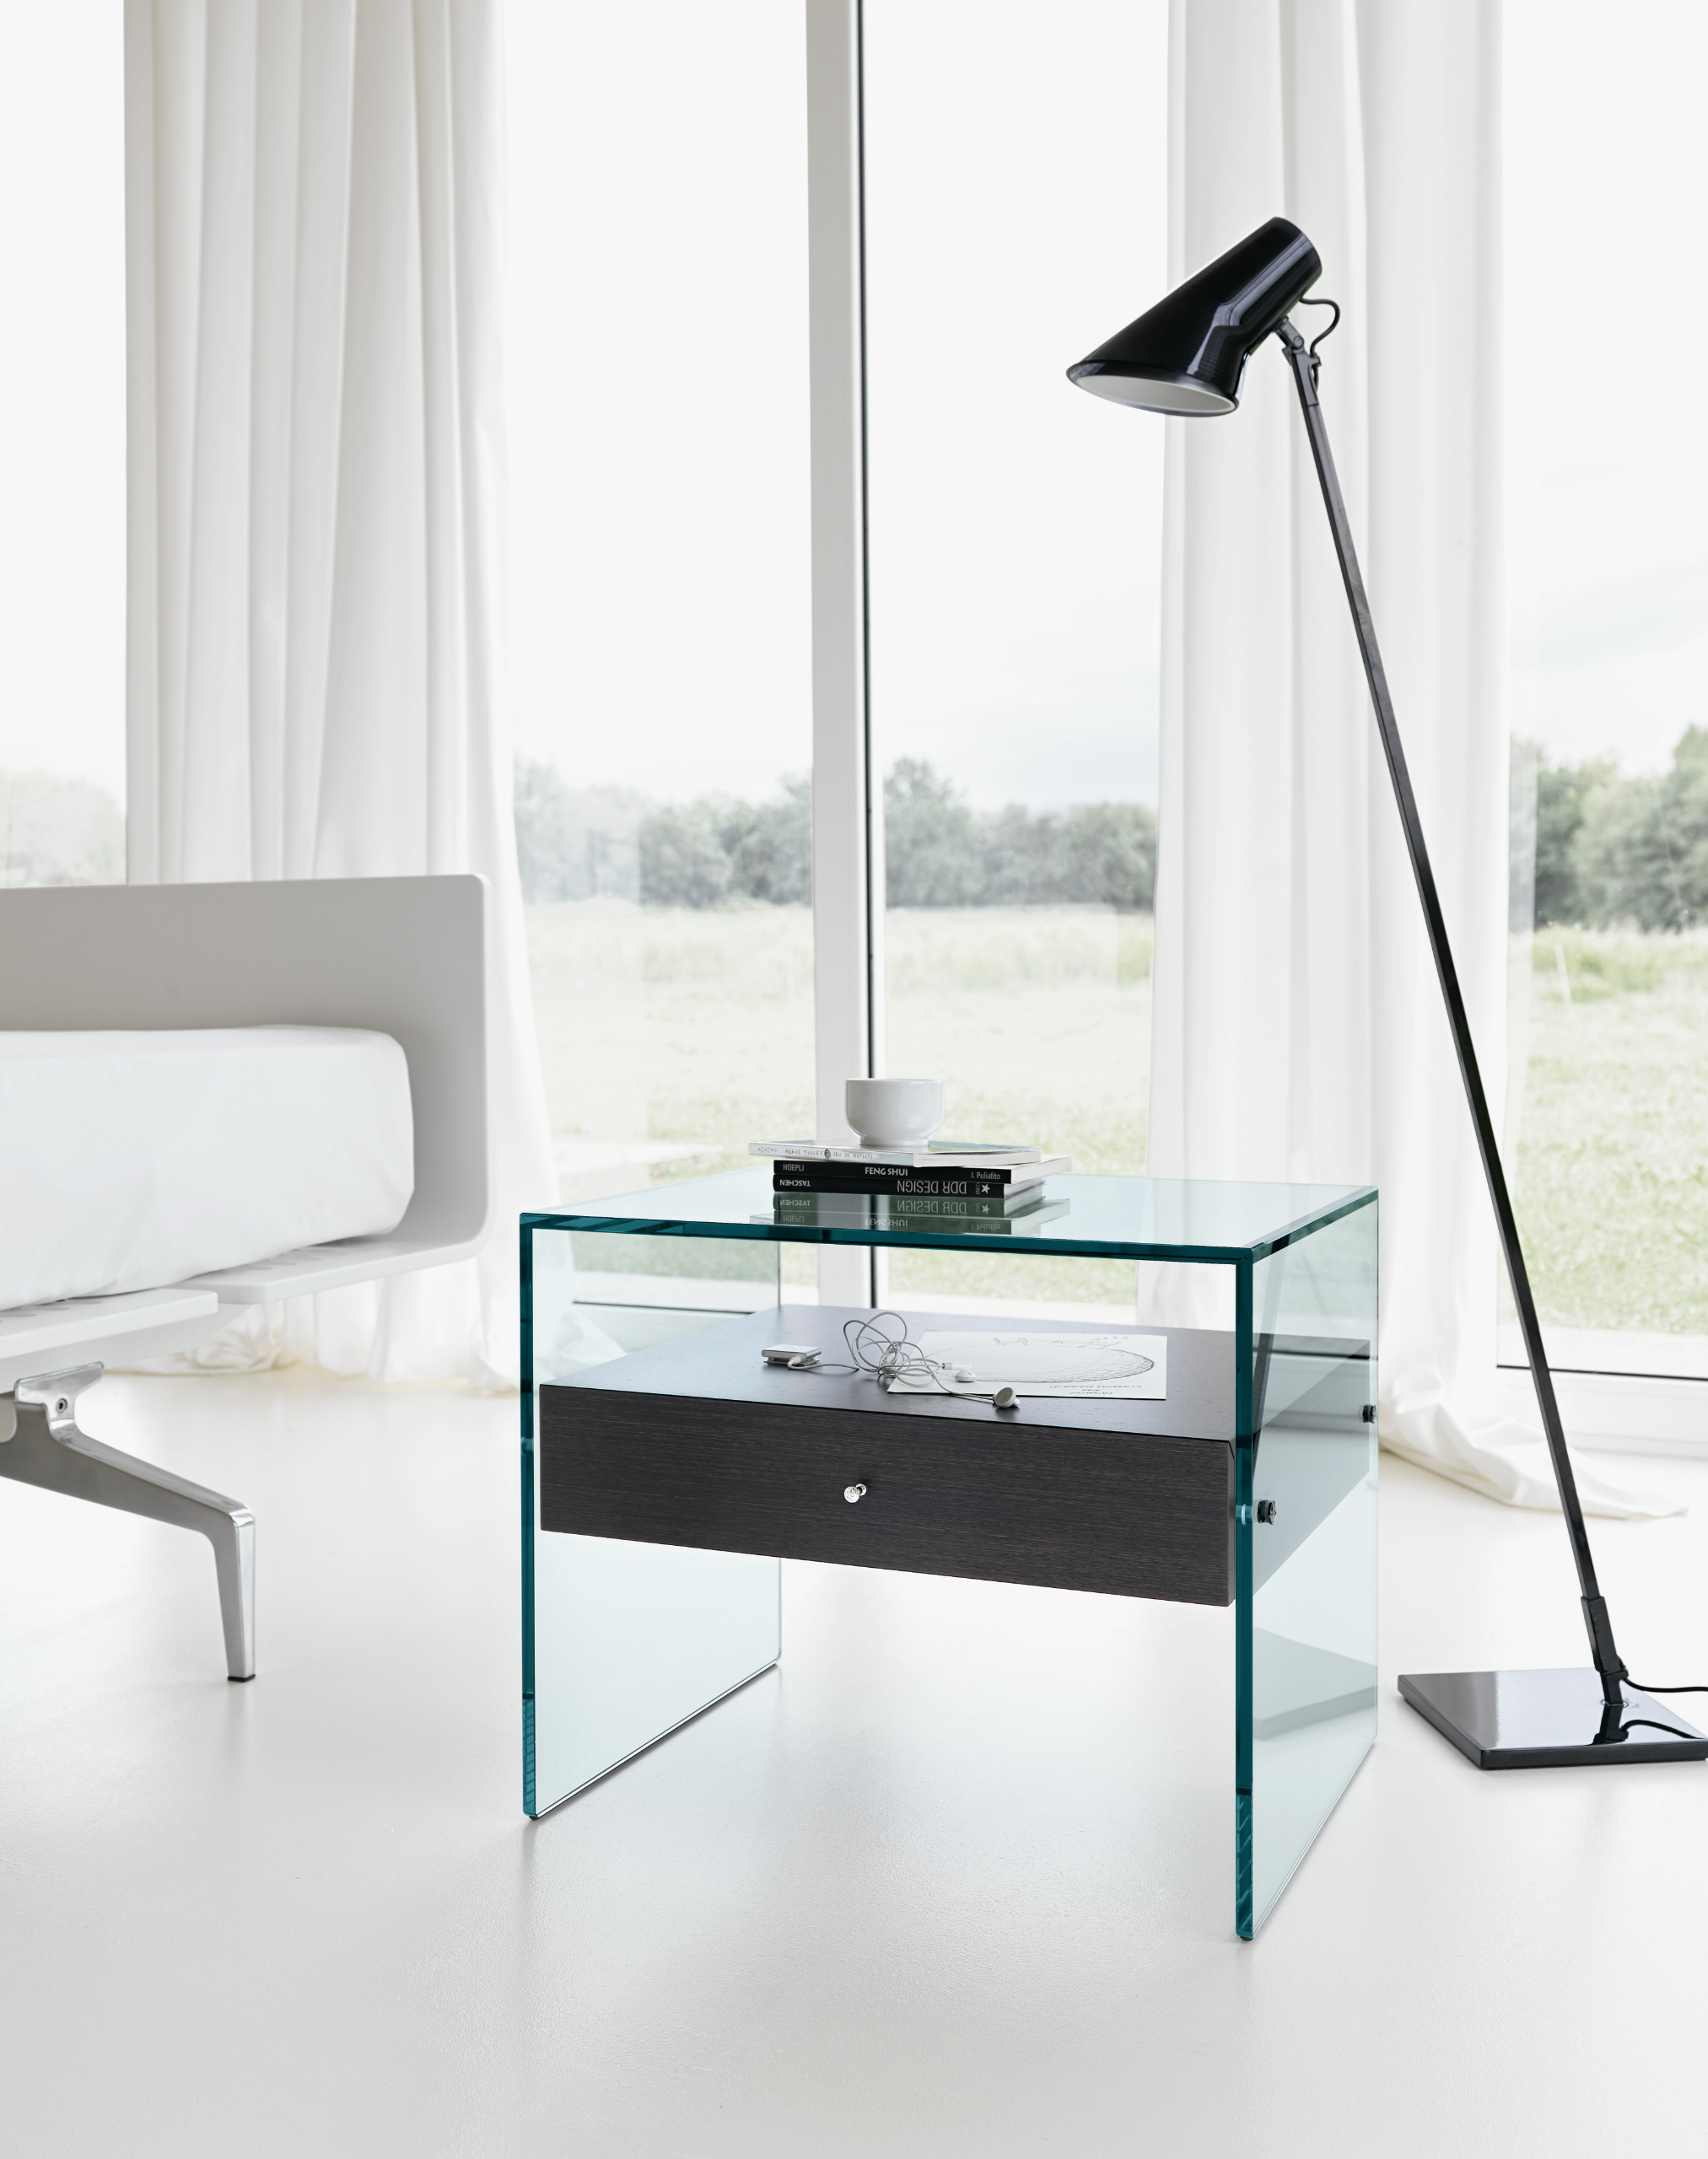 nachttisch aus glas secret by t d tonelli design. Black Bedroom Furniture Sets. Home Design Ideas